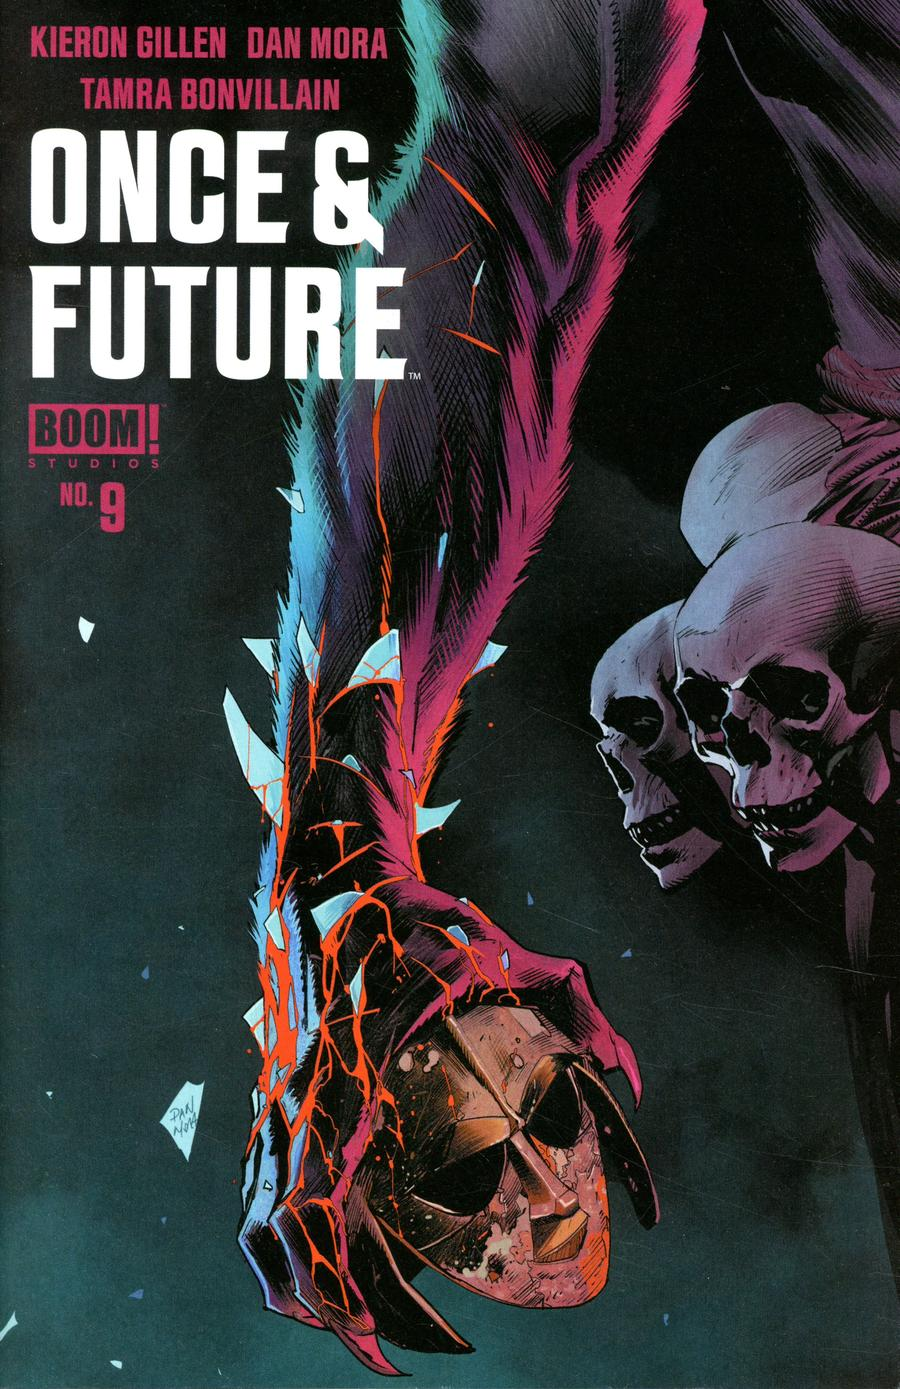 Once & Future #9 Cover A 1st Ptg